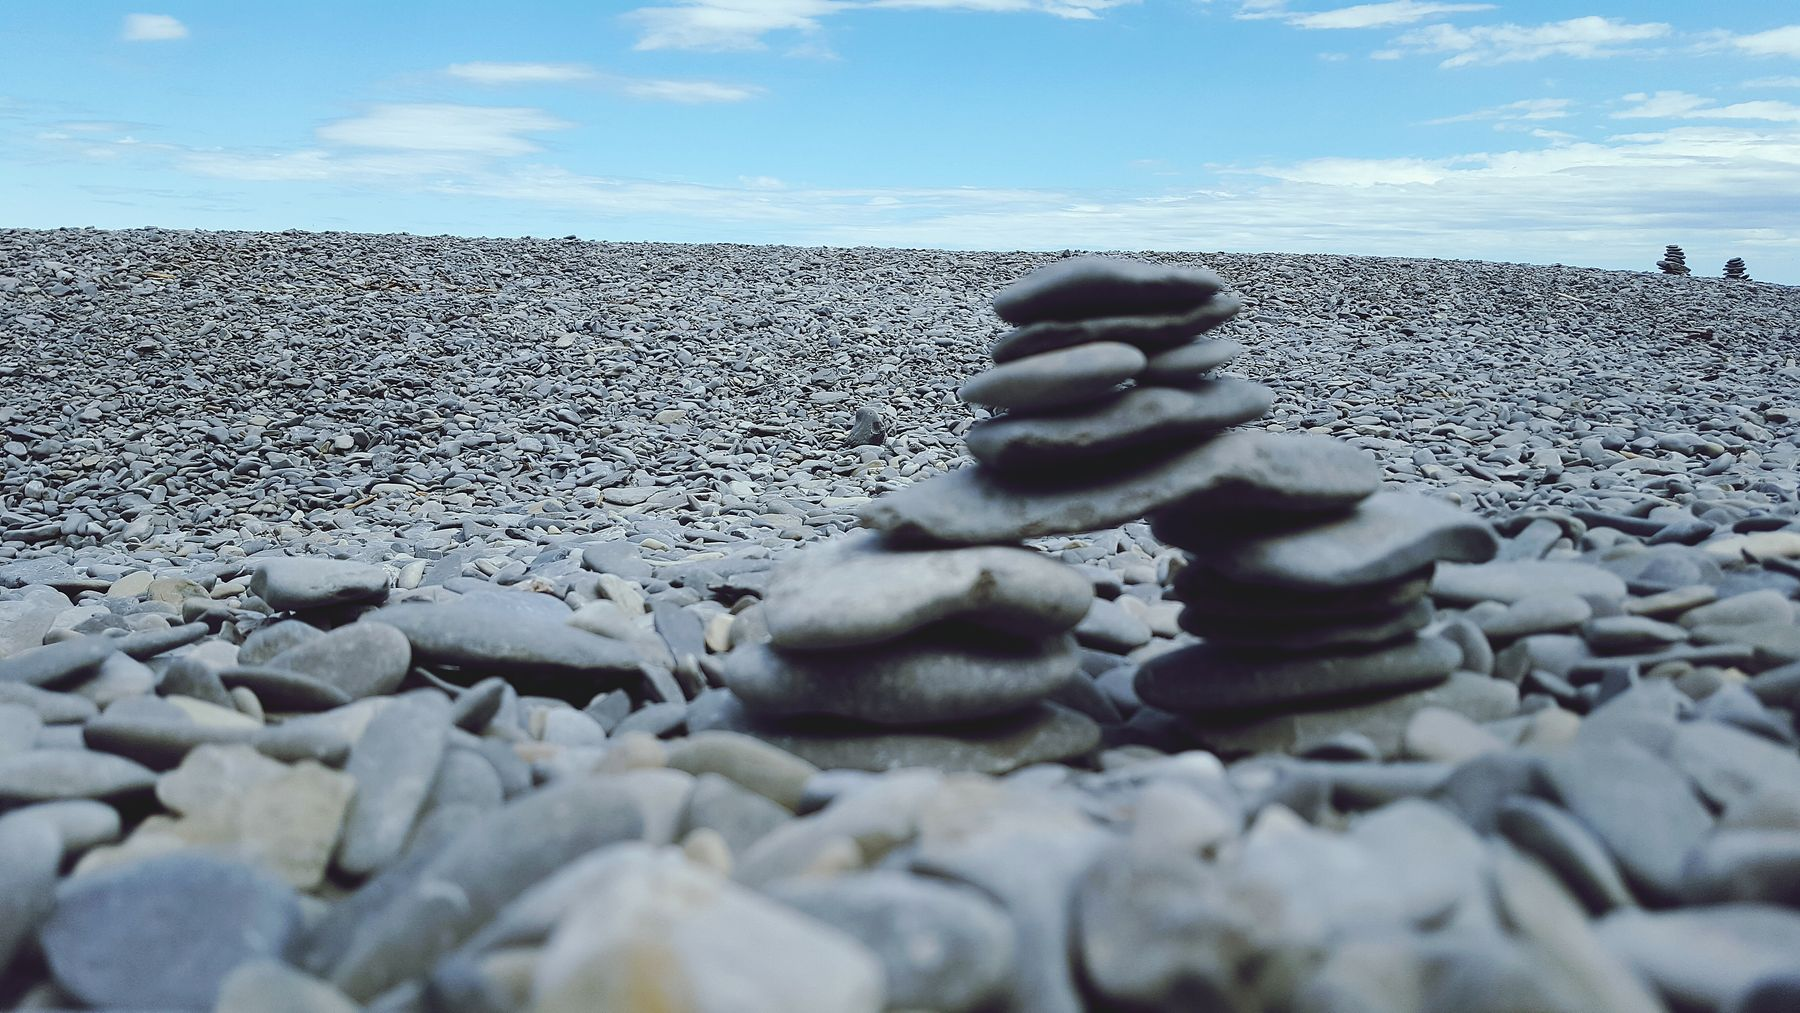 rocks stacked up along the shore in Forillon National Park, a great spot for camping in Quebec